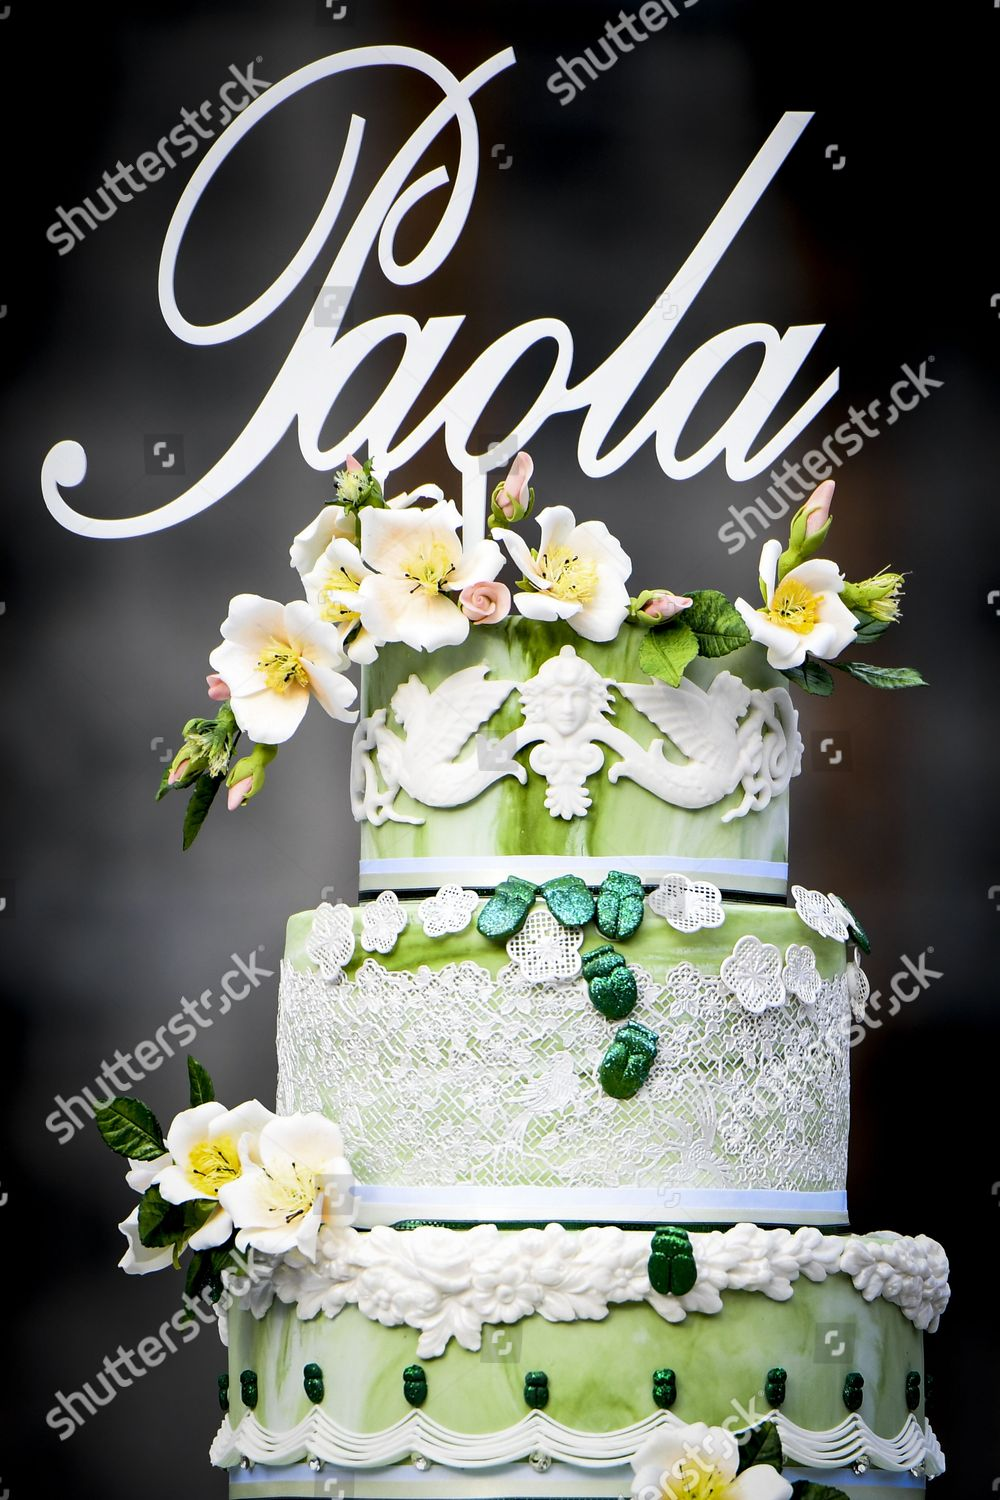 Surprising Queen Paolas Birthday Cake Editorial Stock Photo Stock Image Funny Birthday Cards Online Alyptdamsfinfo